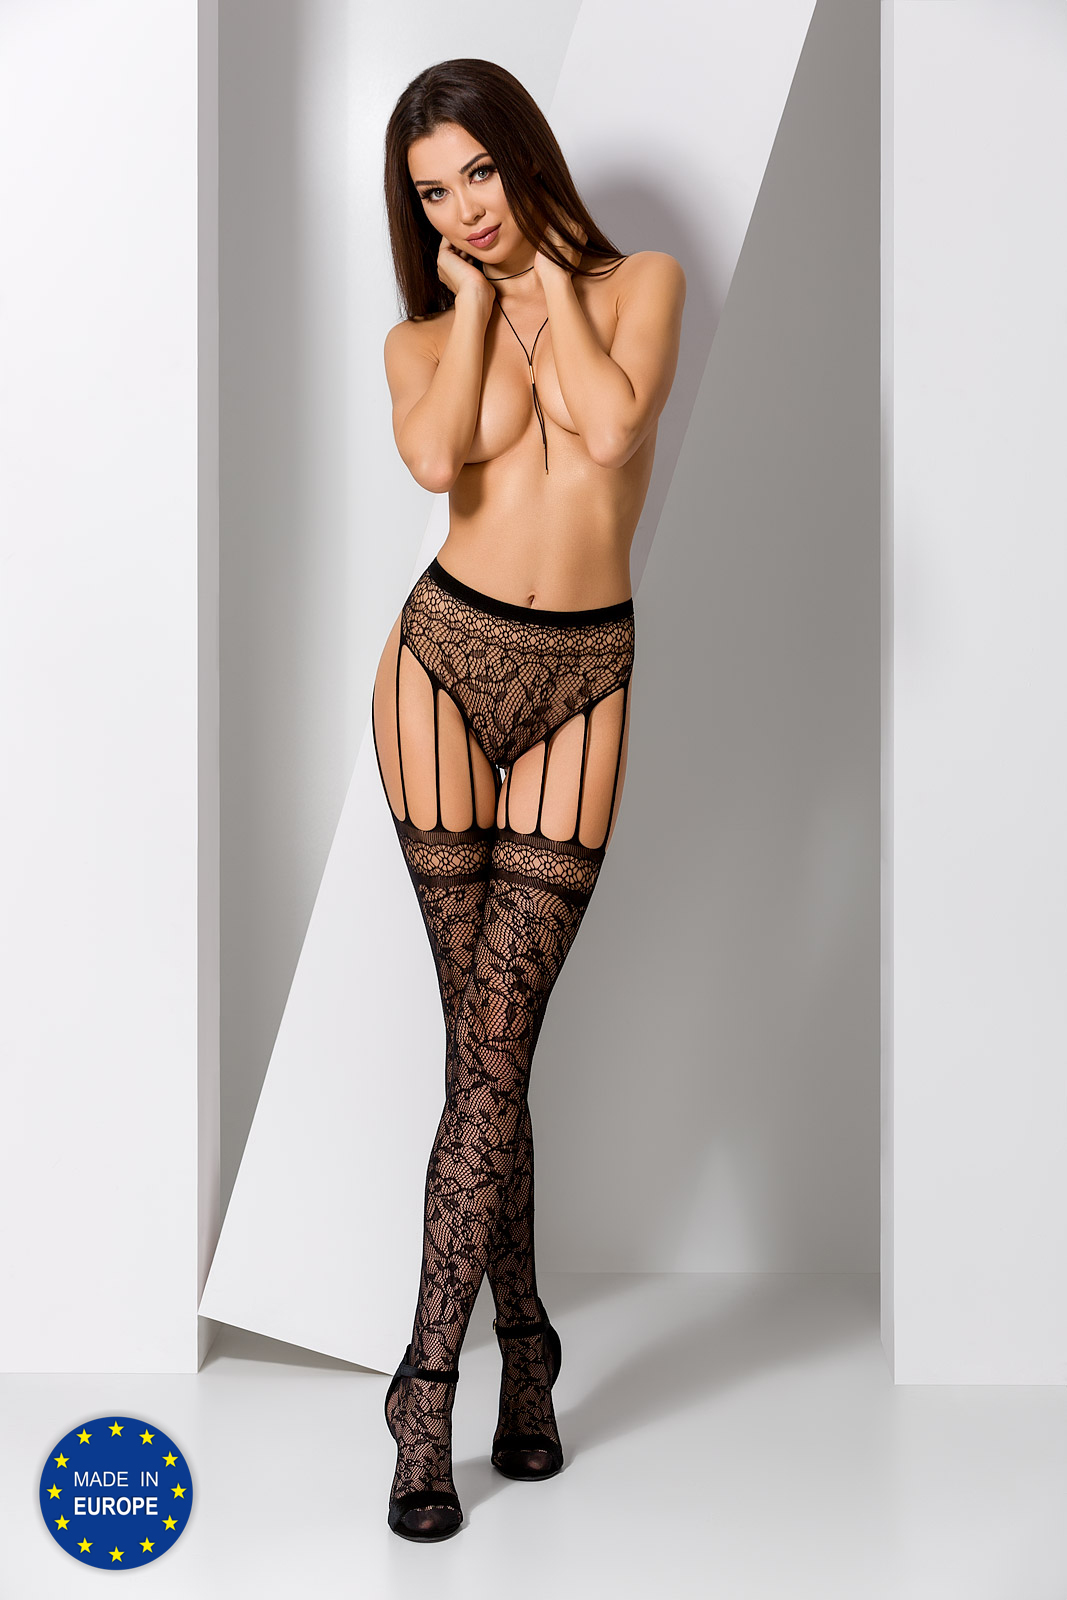 Passion Jarretelles panty S003 black